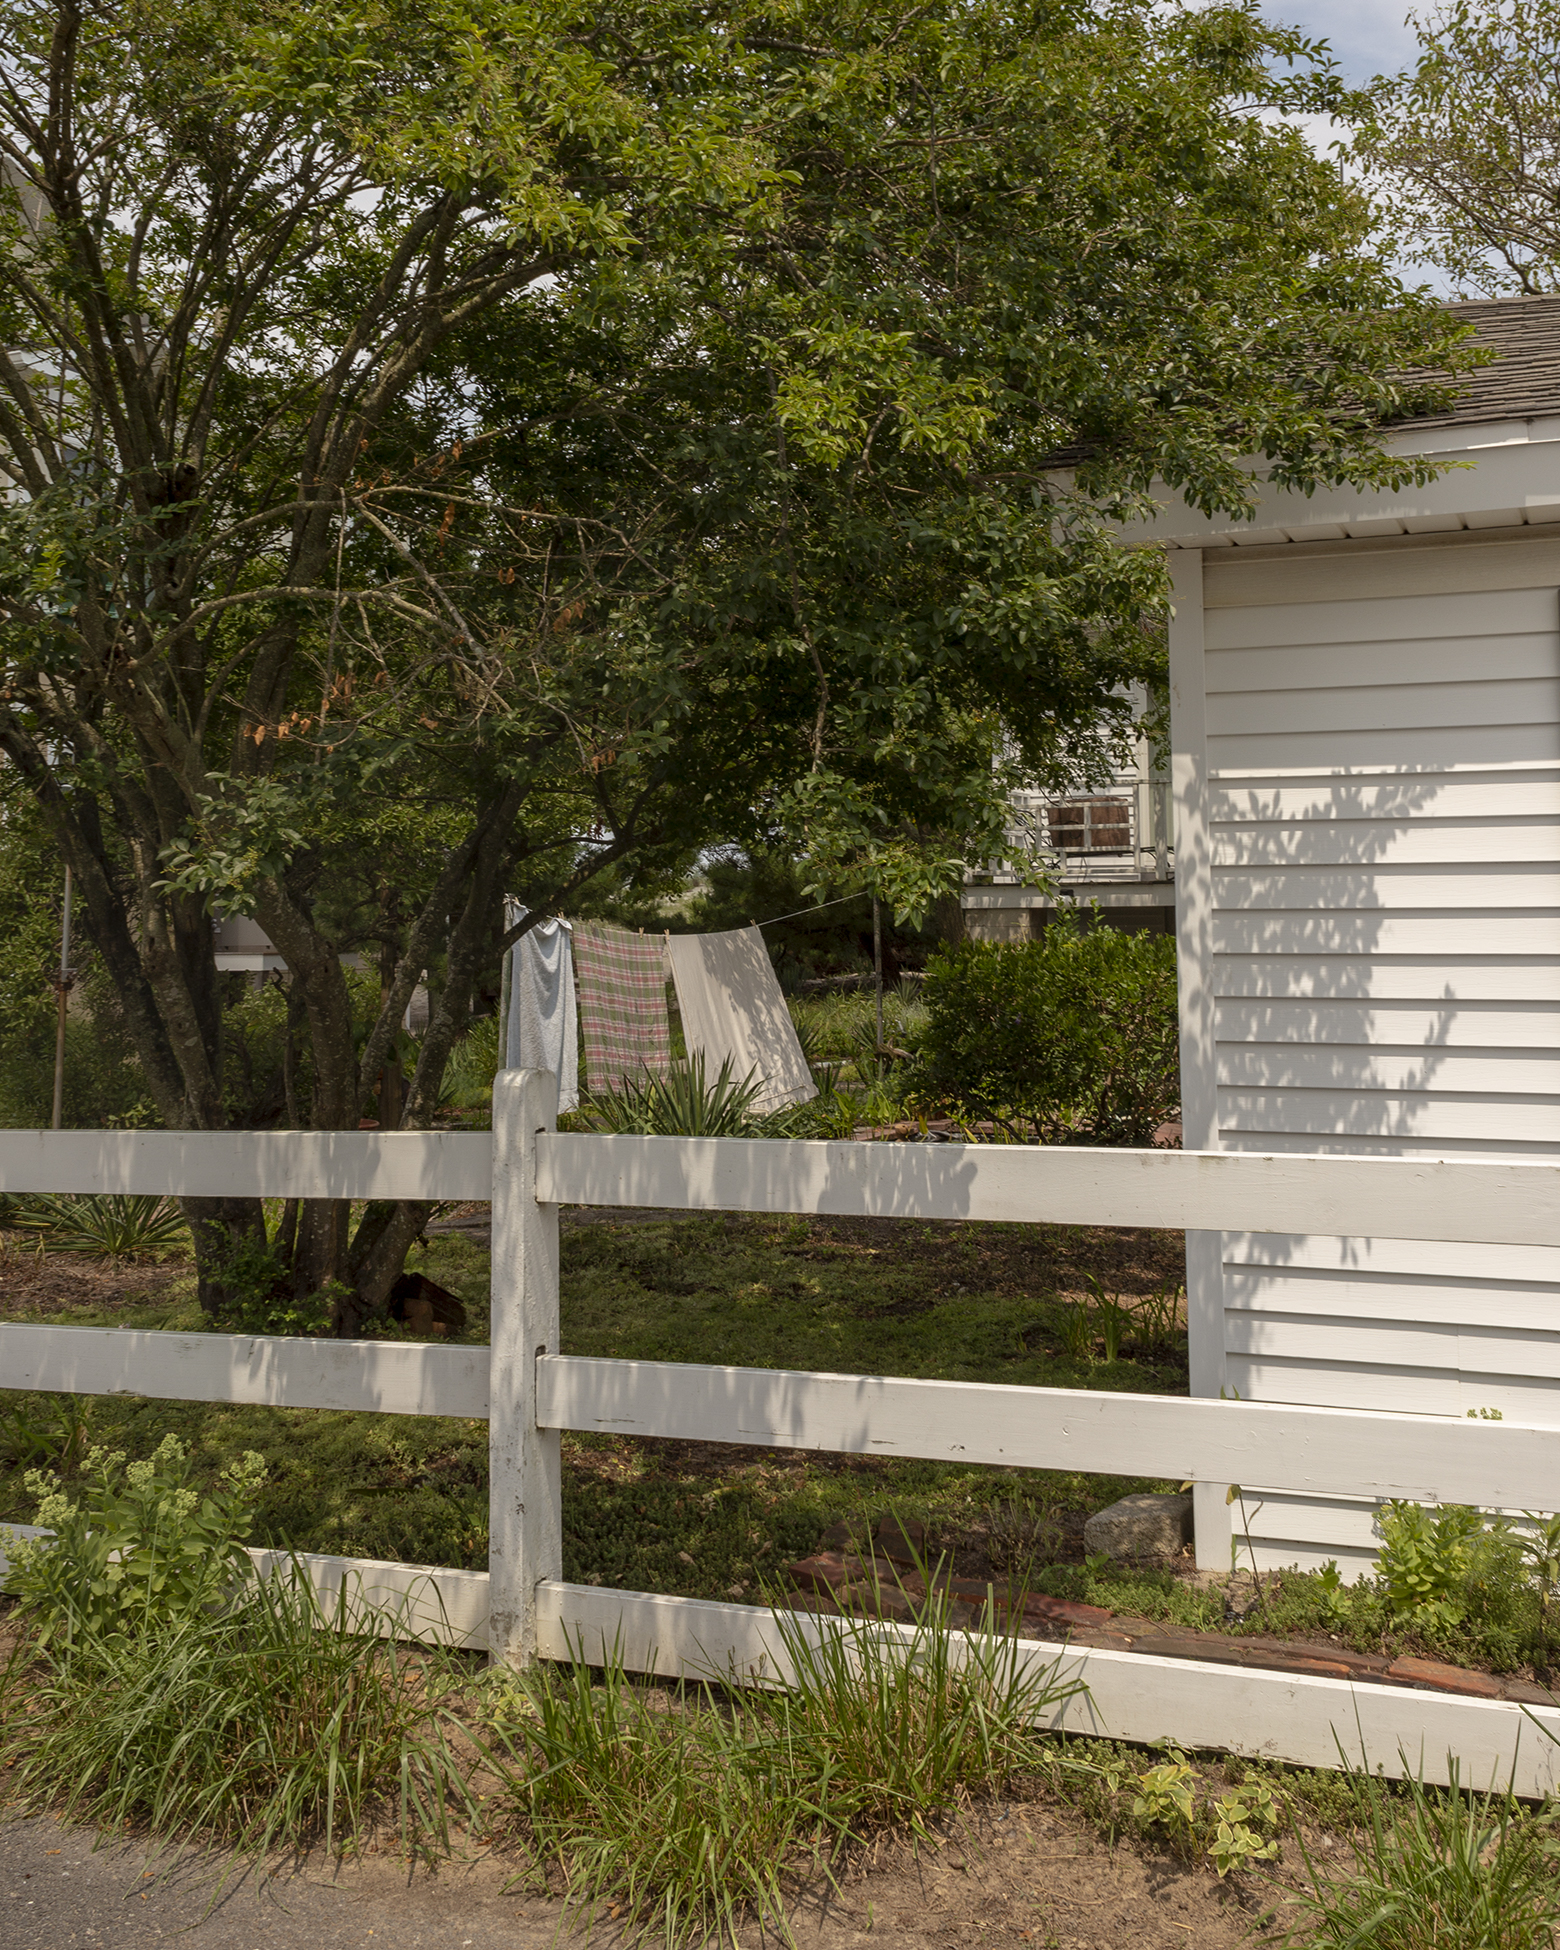 laundry by the lewes shore, Delaware, 2018